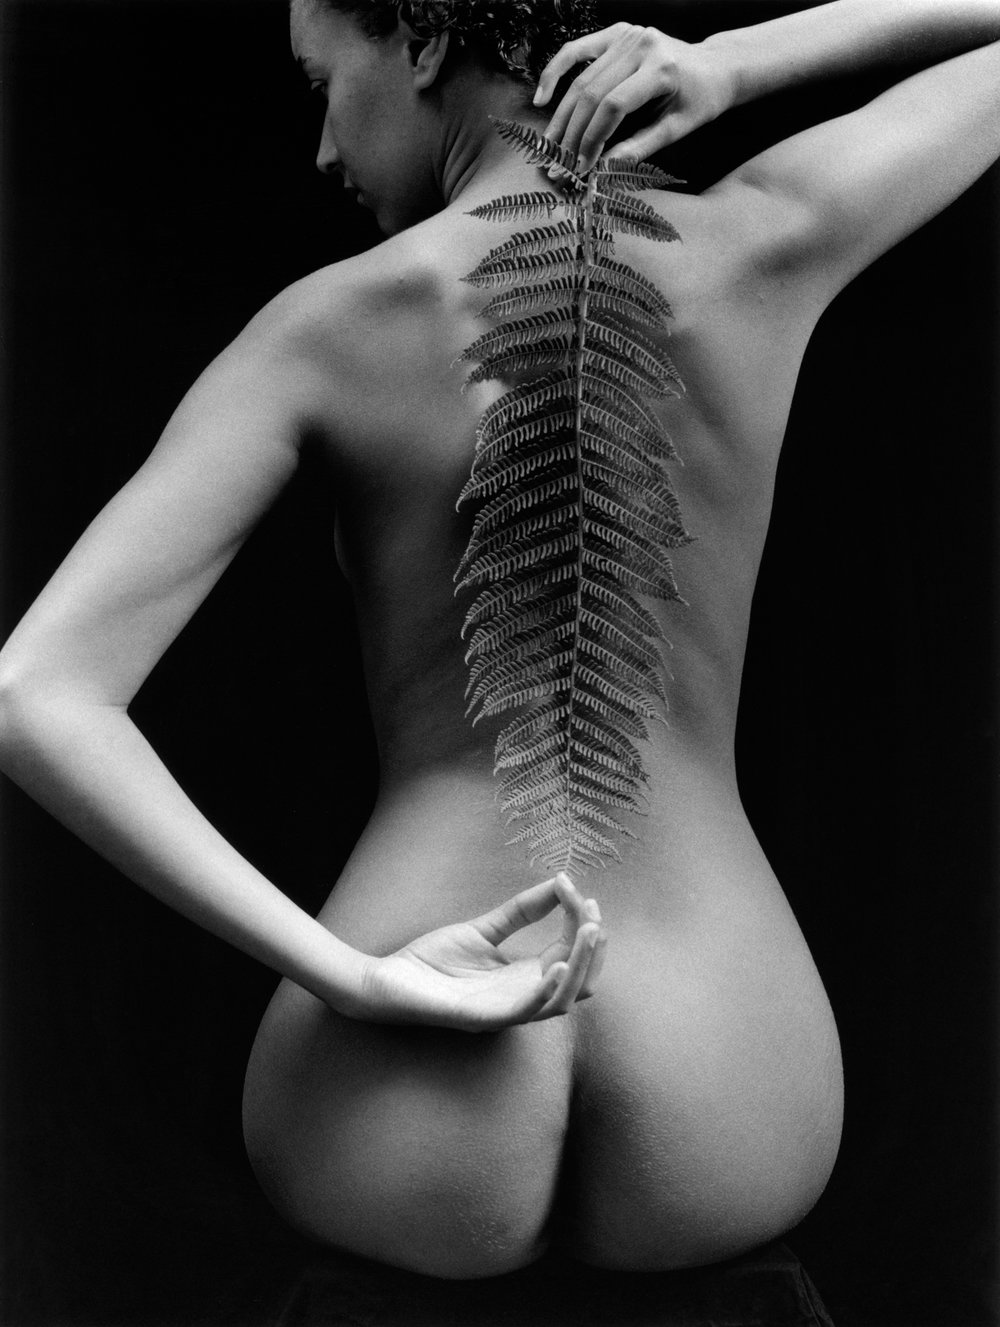 kim-weston-nude-and-fern-2008.jpg